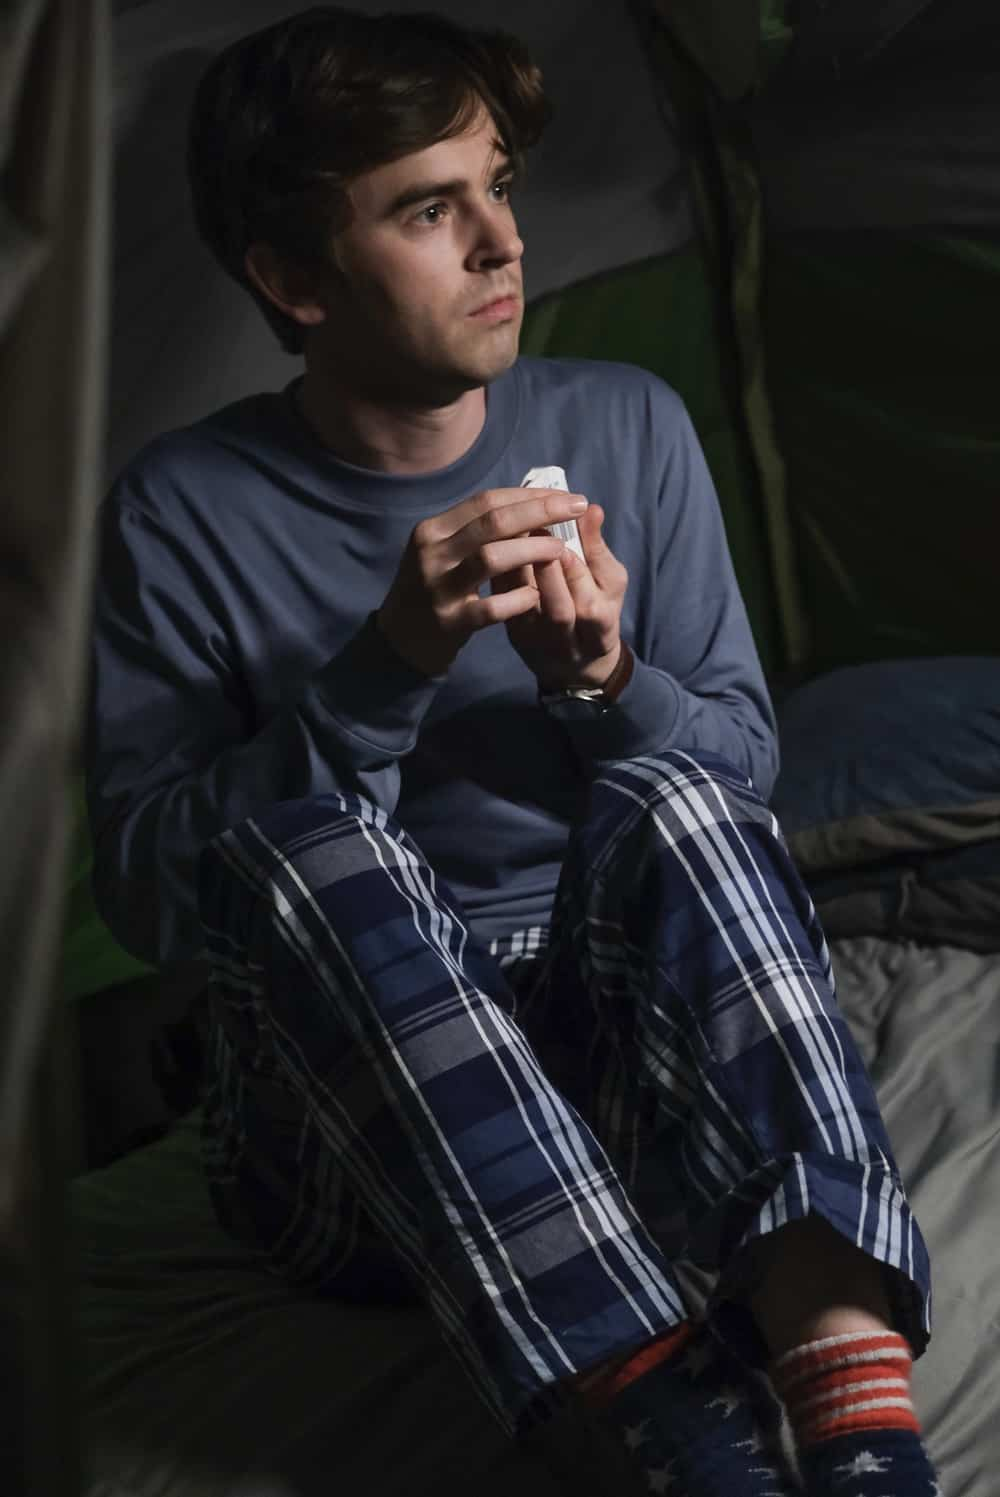 """THE GOOD DOCTOR Season 4 Episode 18 - """"Forgive or Forget"""" – Shaun and Lea go on a camping trip to distract themselves from their grief over their miscarriage. Meanwhile, Morgan and Park argue about the best course of treatment for their patient on an all-new episode of """"The Good Doctor,"""" MONDAY, MAY 24 (10:00-11:00 p.m. EDT), on ABC. (ABC/Jeff Weddell) FREDDIE HIGHMORE"""